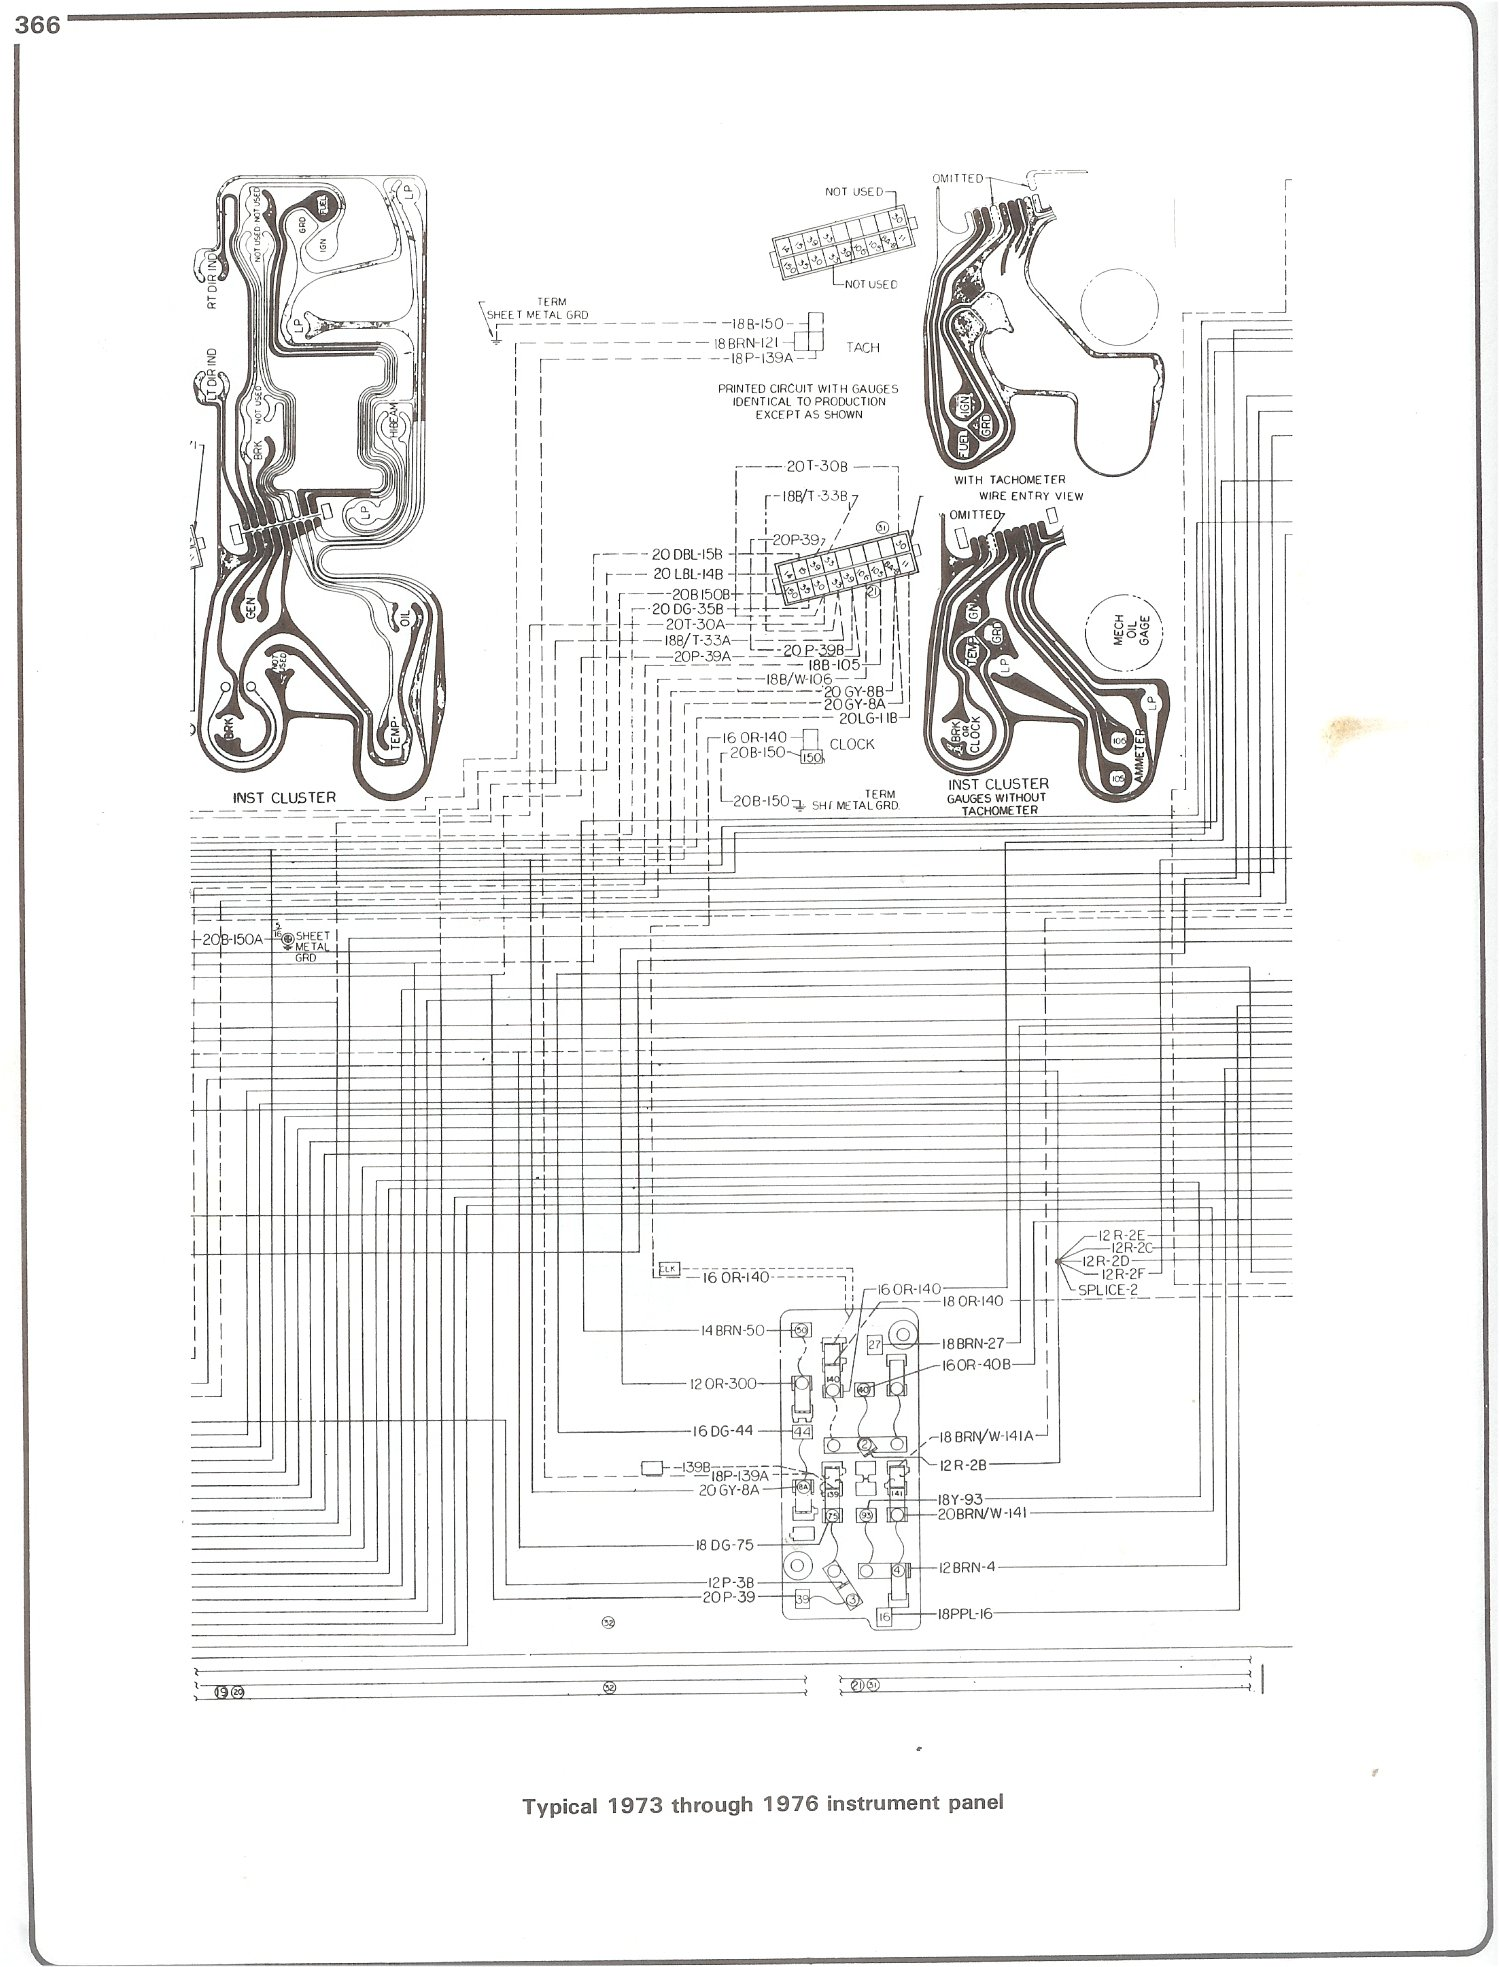 73 76_instrument complete 73 87 wiring diagrams 1978 chevy truck fuse box diagram at crackthecode.co